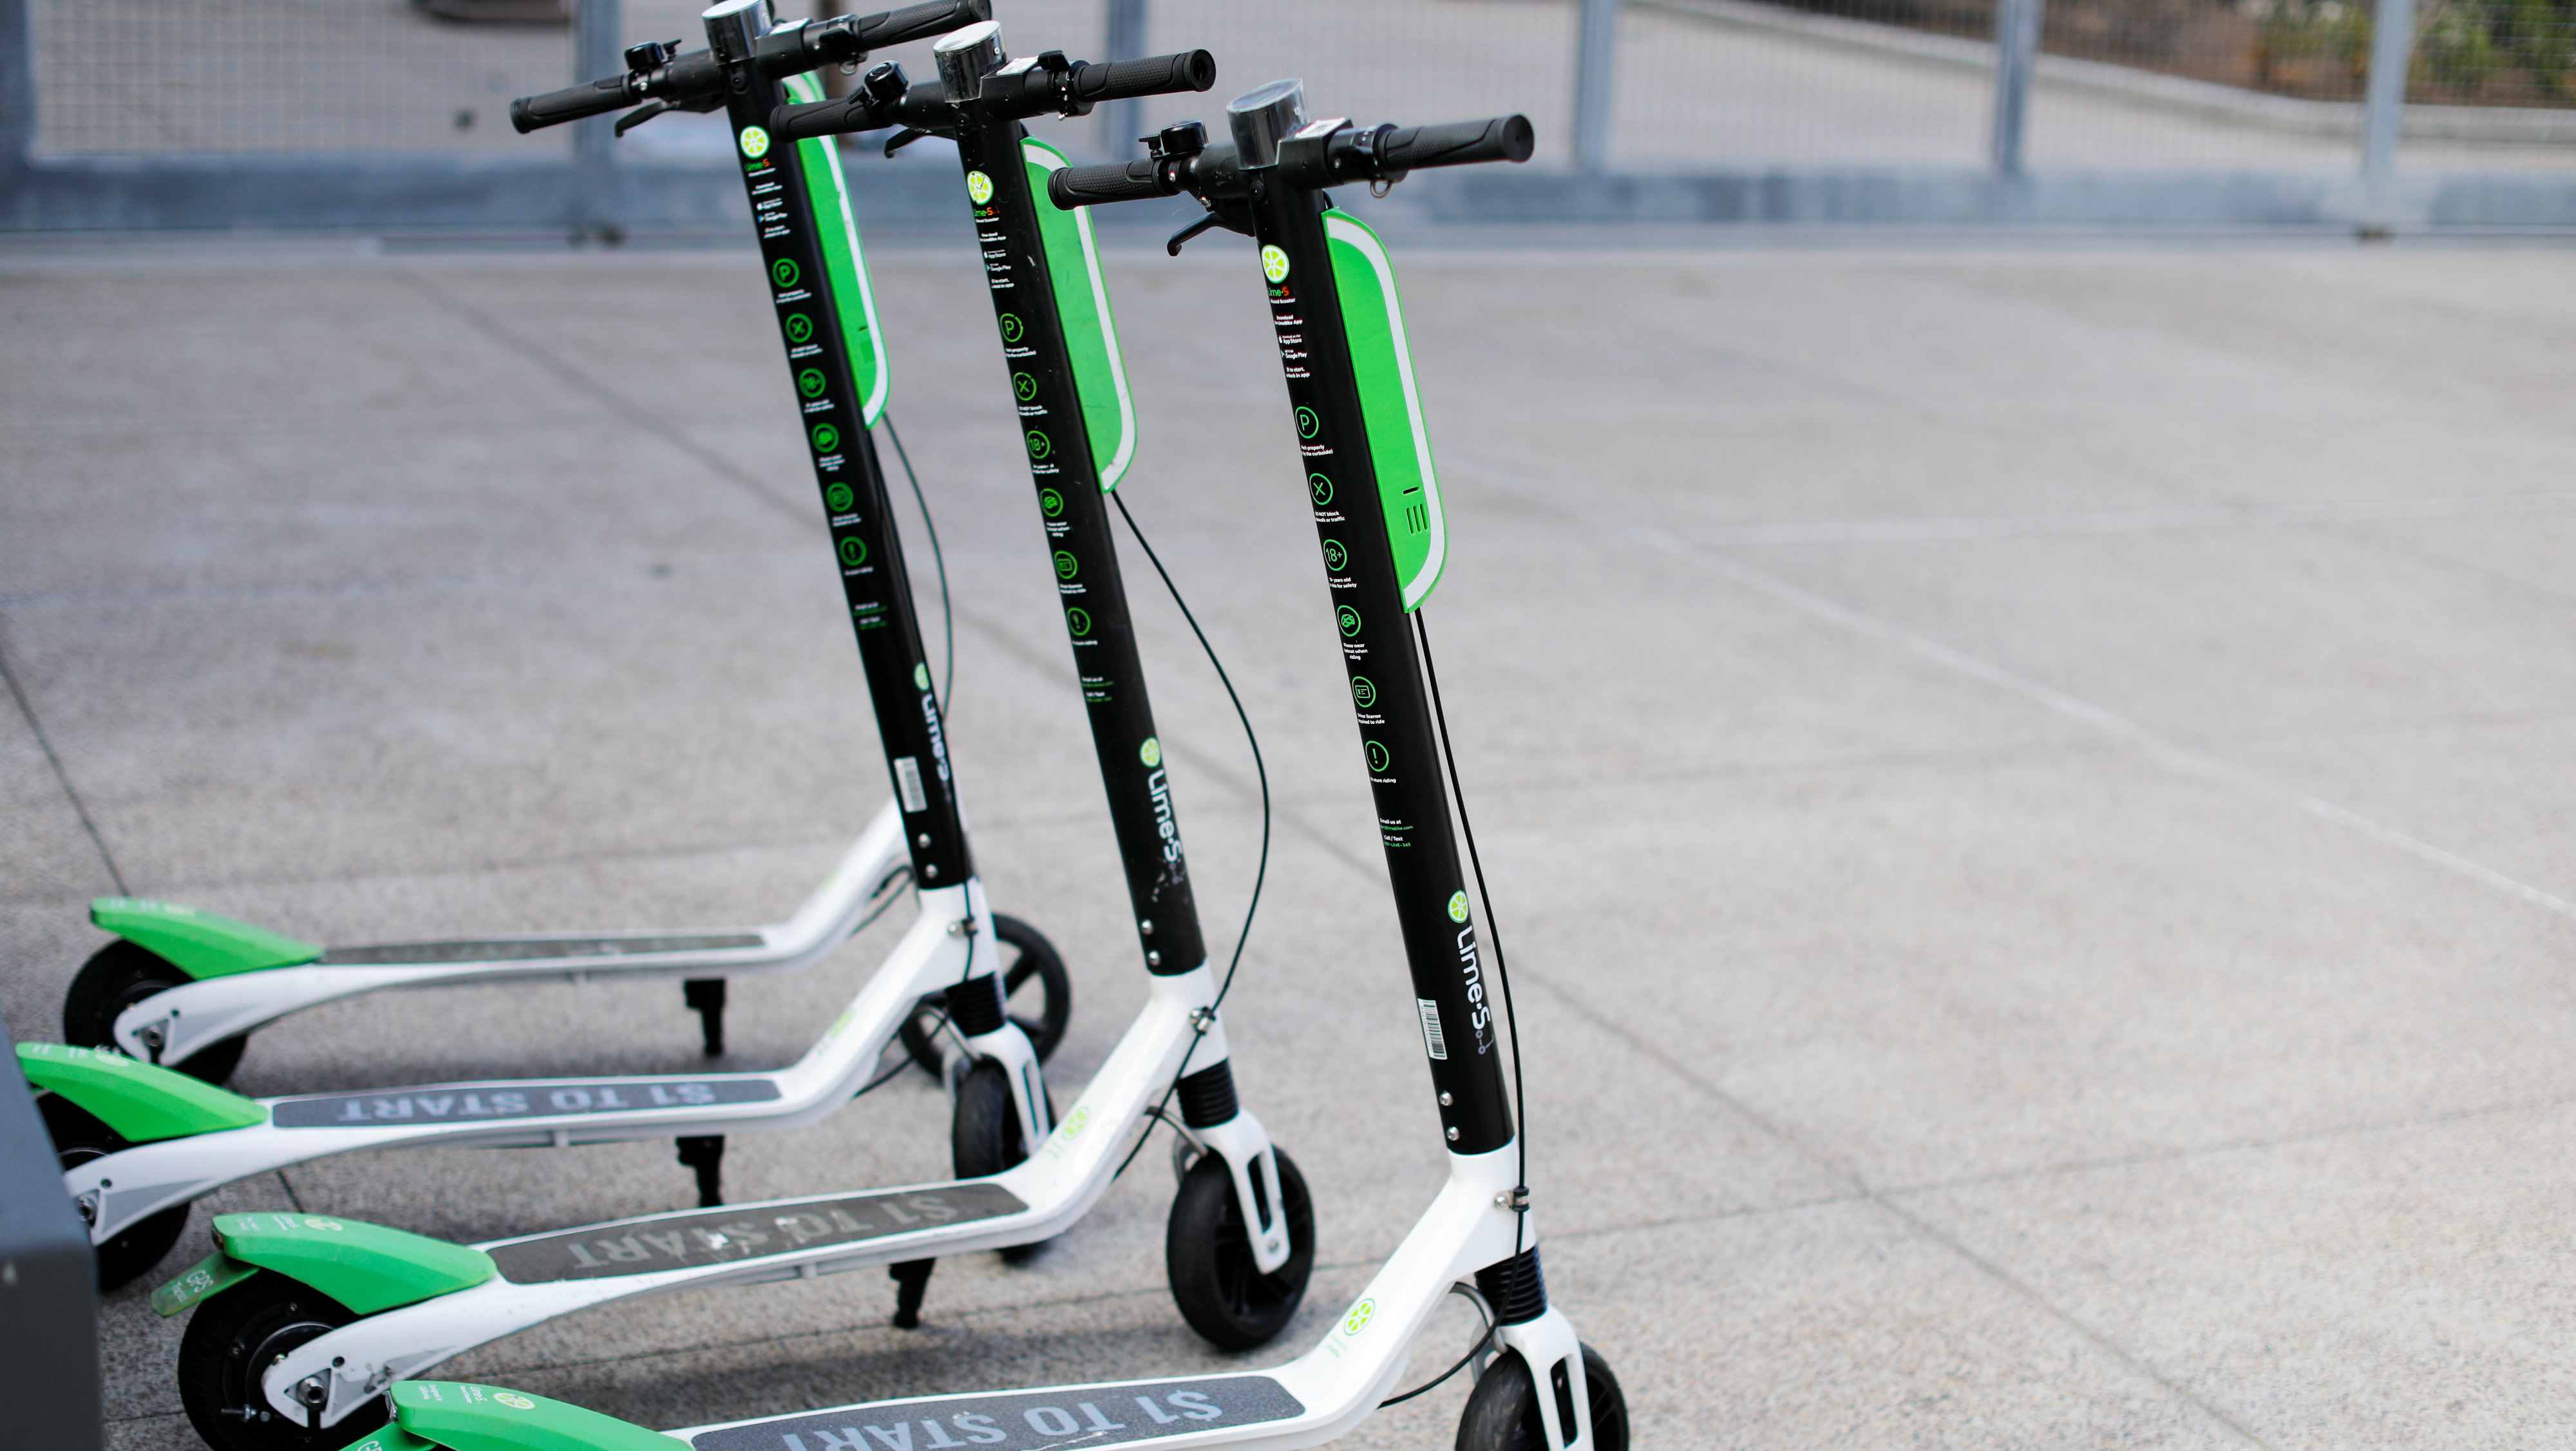 Smart phone app time-of-use electric scooters from Lime-S are shown parked along a sidewalk in San Diego, California, U.S.